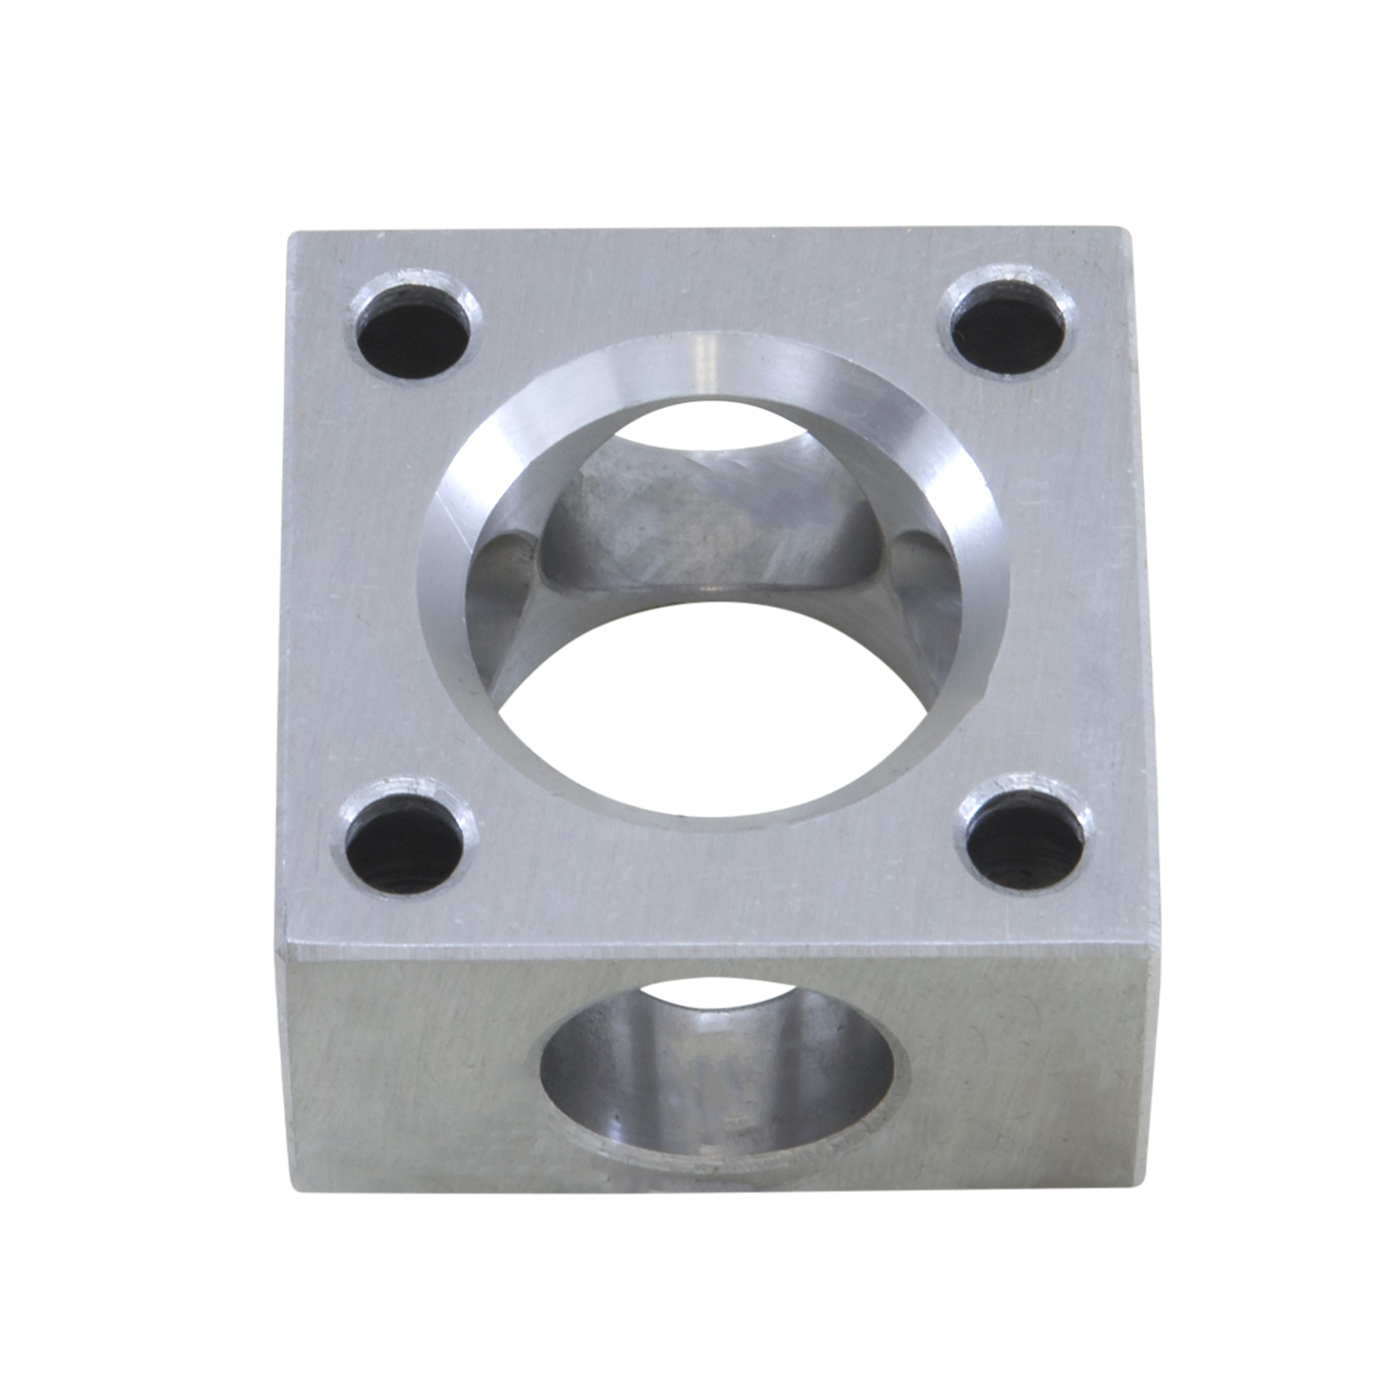 YSPXP-031 - Standard open and TracLoc cross pin  block for 9